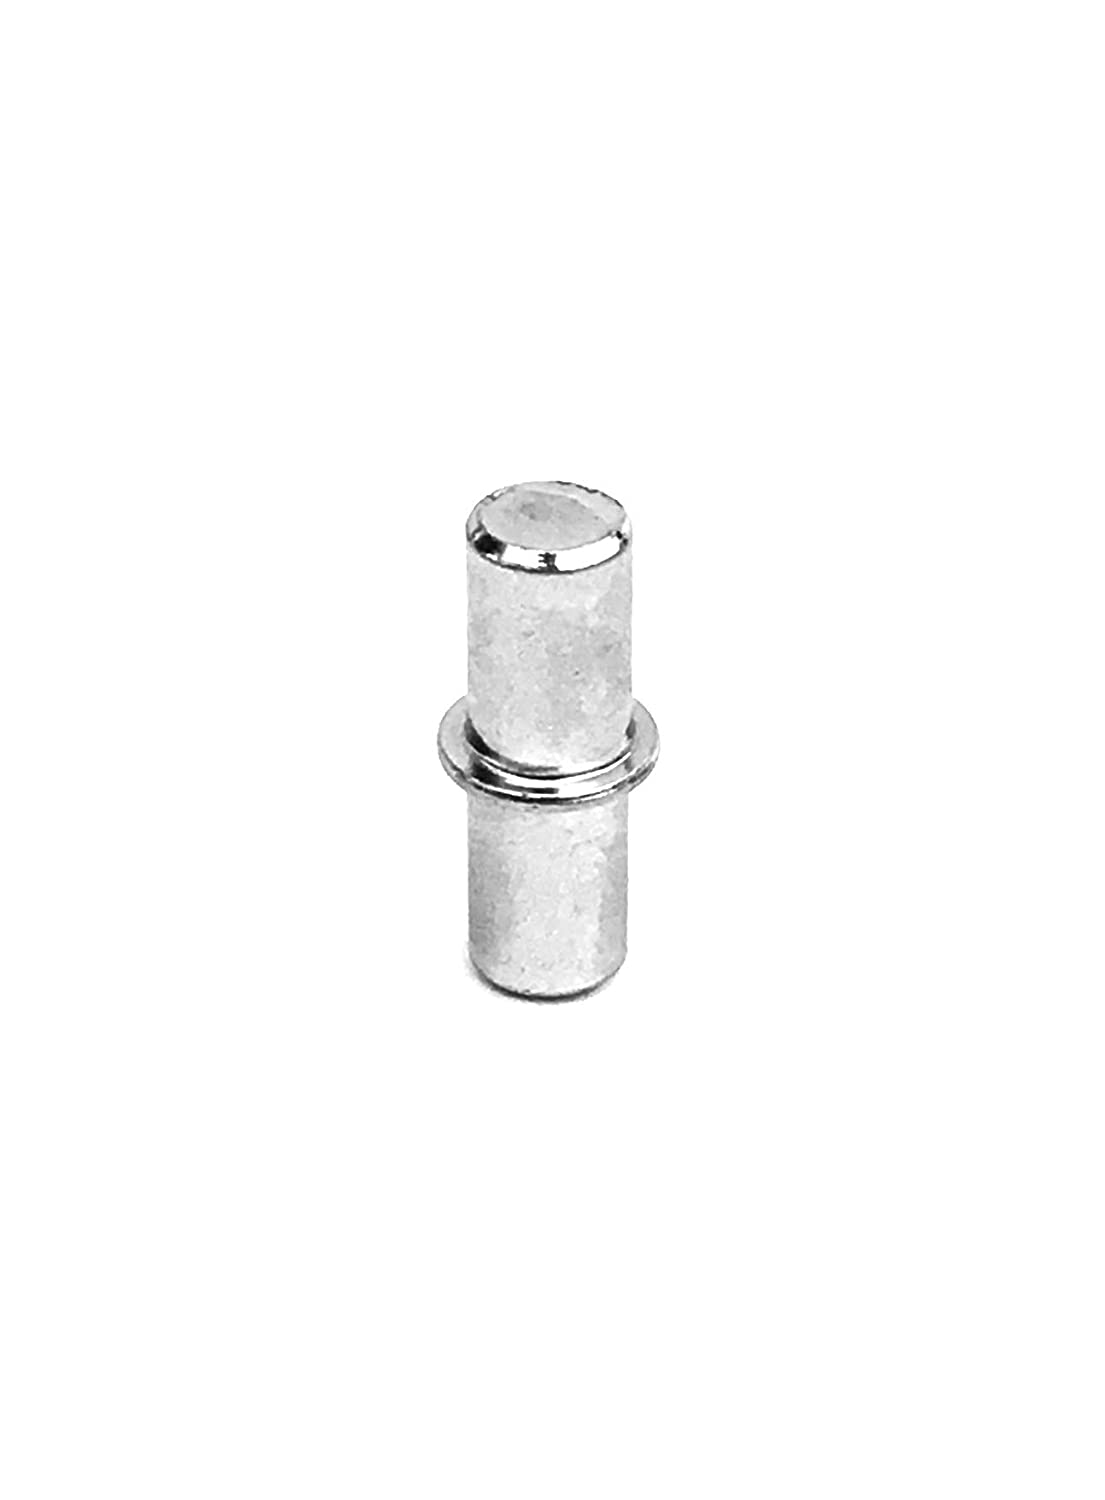 Spare Hardware Parts Bookshelf Pins (IKEA Part #101532) (Pack of 10)